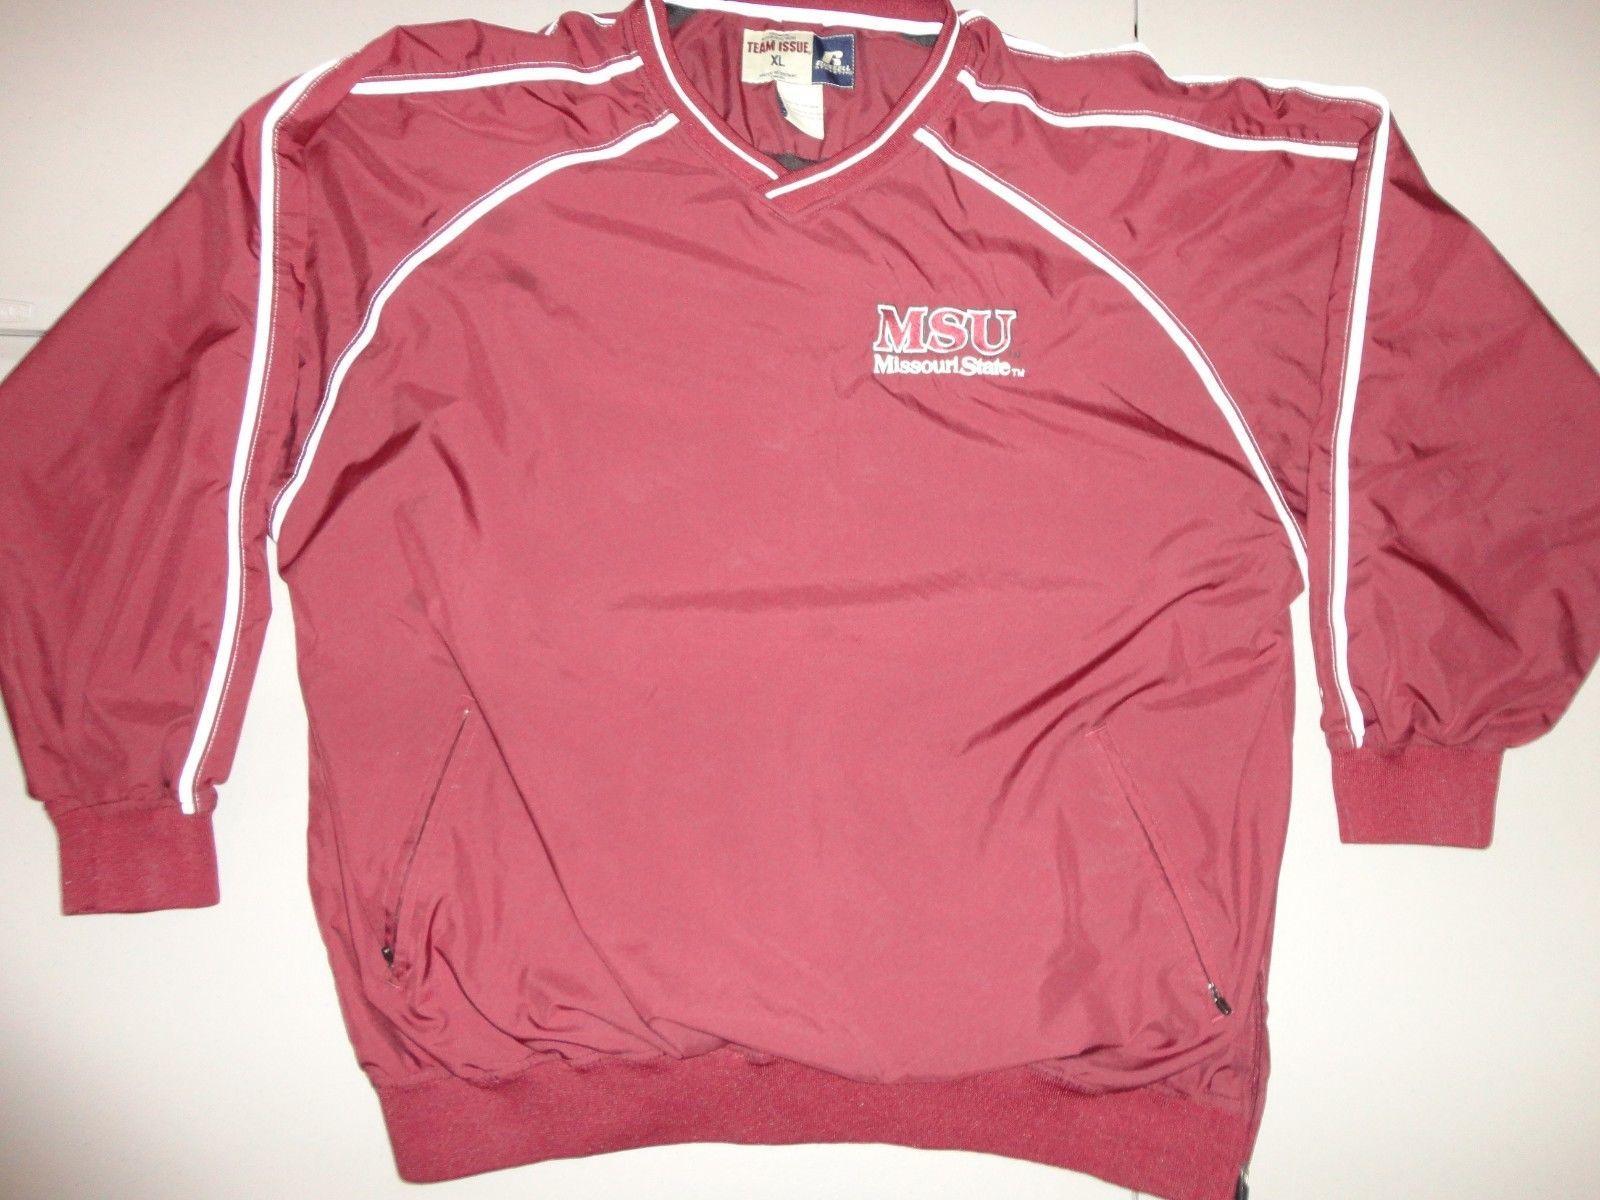 Primary image for  NCAA TEAM ISSUE Missouri State University Bears  Sewn V neck Jacket Adult XL